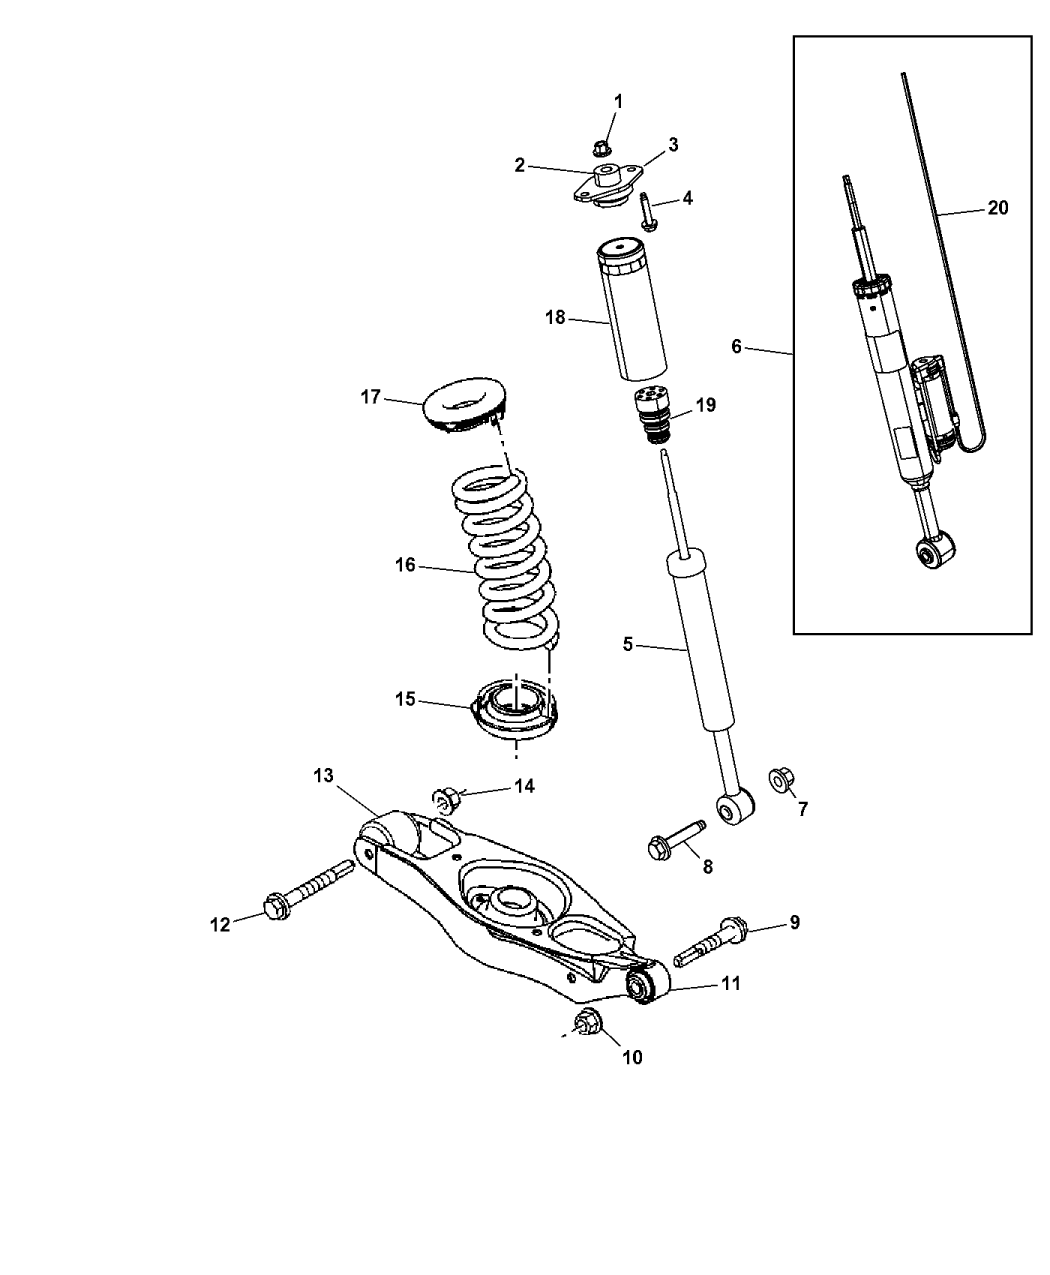 Resource T D Amp S L Amp R Ab C Ee C Ff E Ab B A Db C B Cb B A on 2007 Dodge Charger Front Suspension Diagram